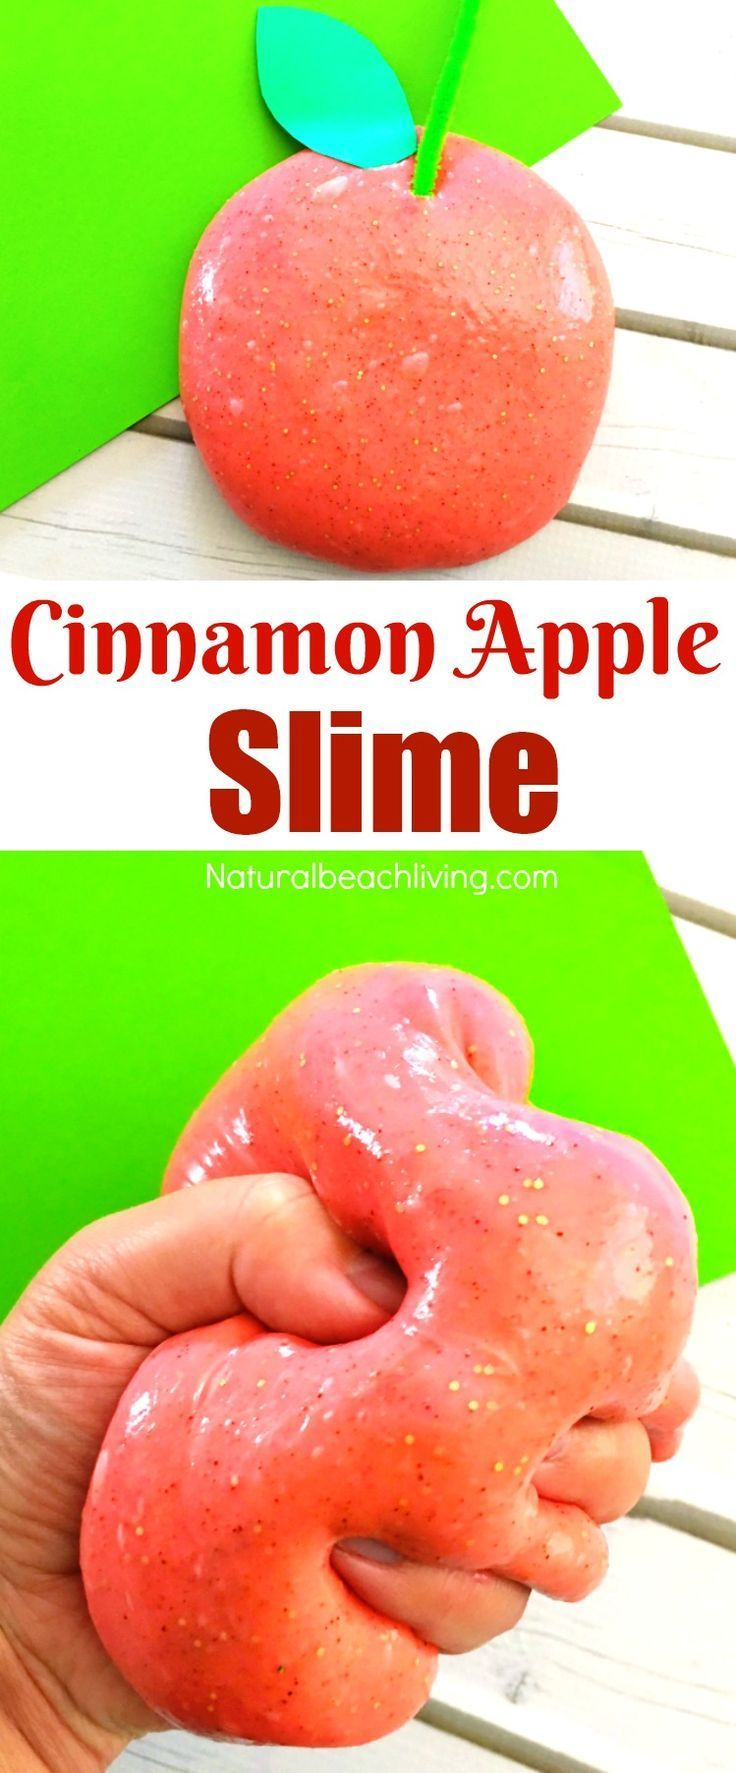 How to make super jiggly slime cinnamon apple scented slime borax how to make super jiggly slime cinnamon apple scented slime borax slime and slime recipe ccuart Choice Image